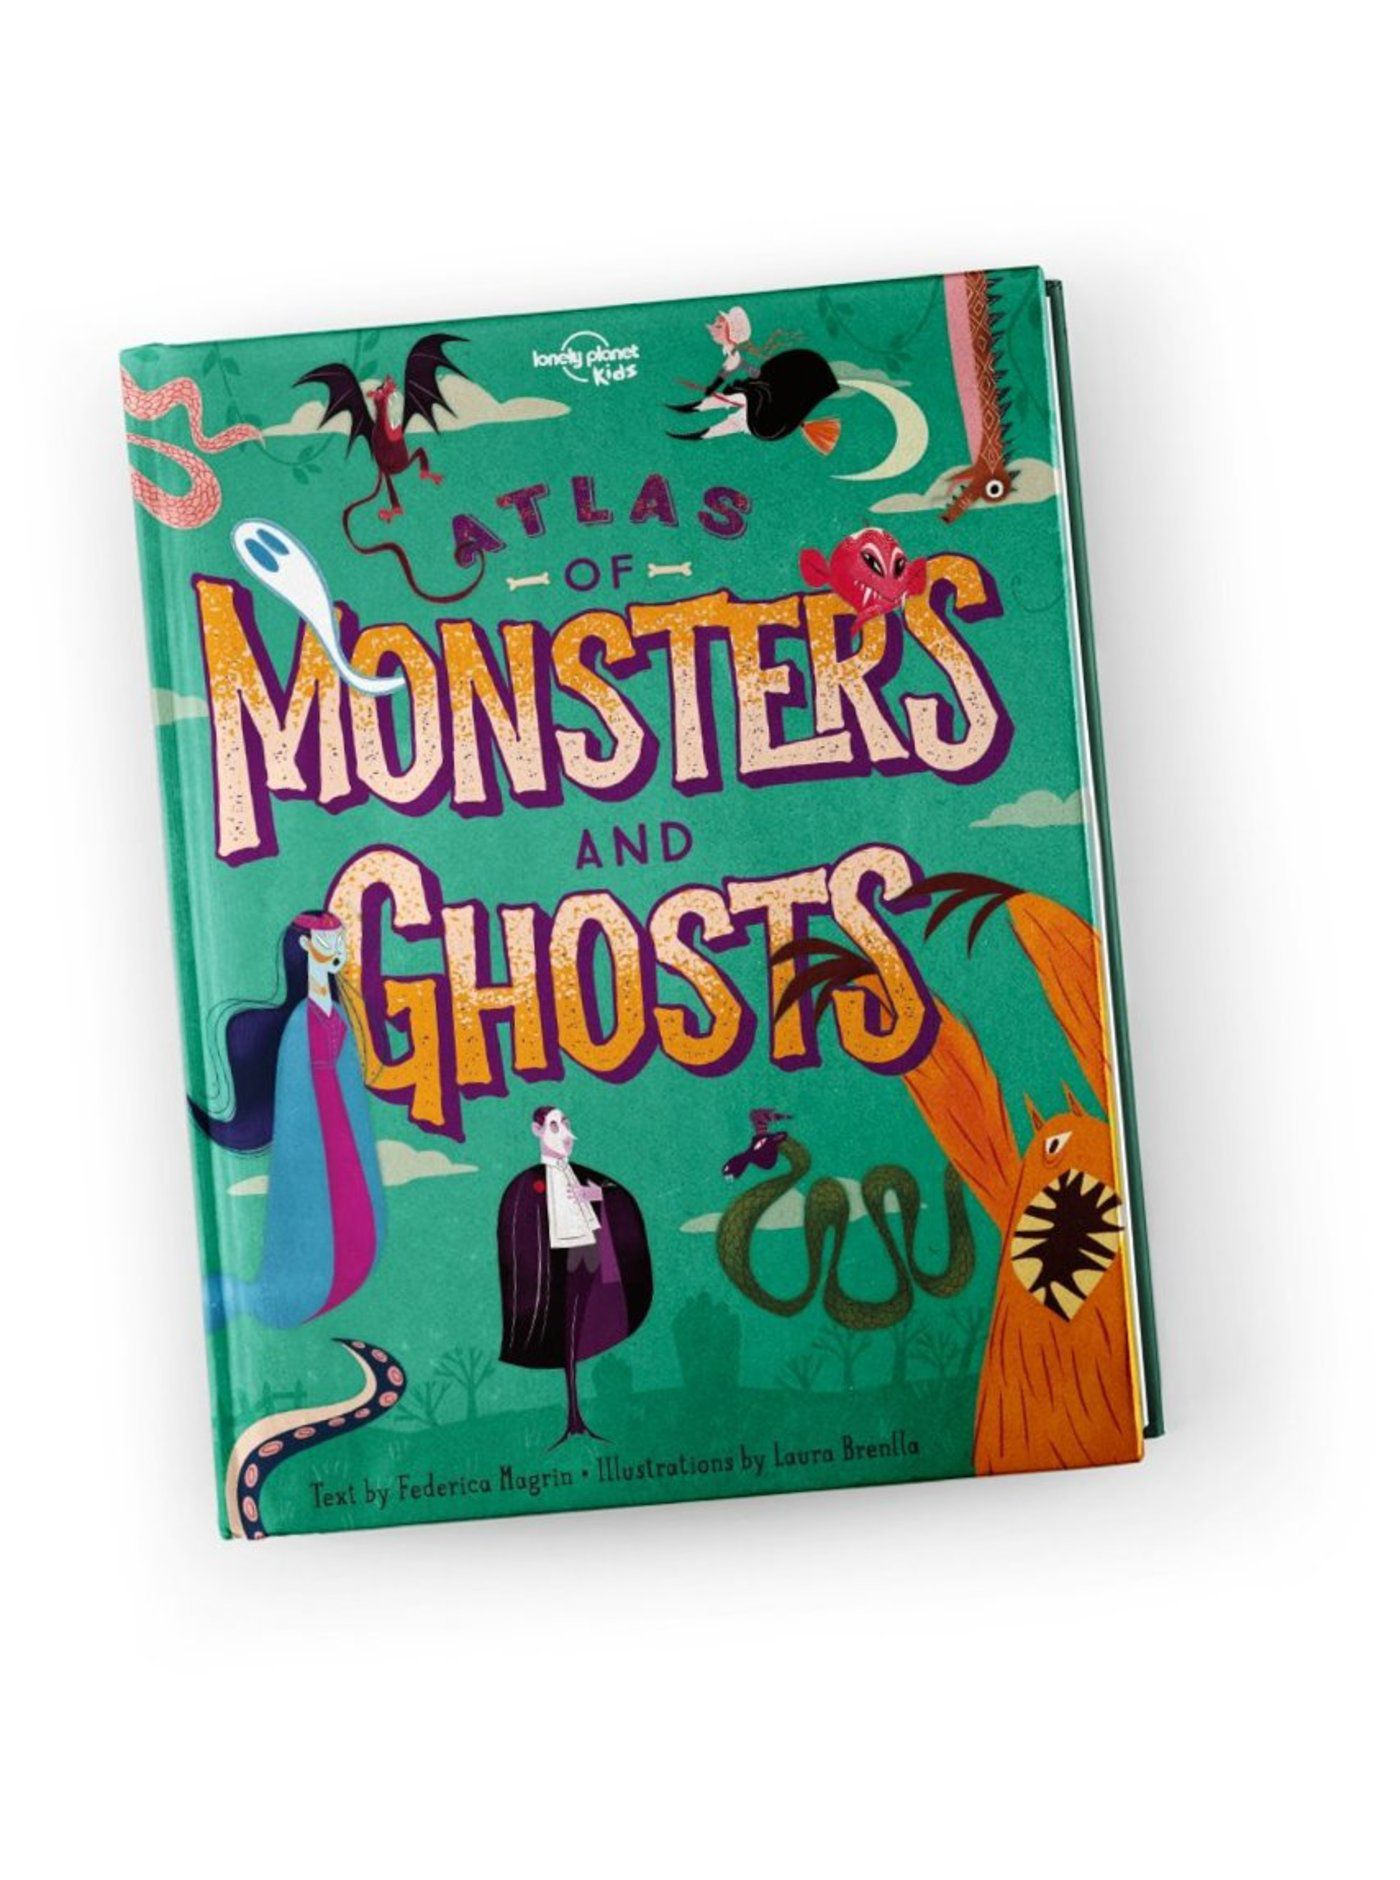 Atlas of Monsters and Ghosts cover image.